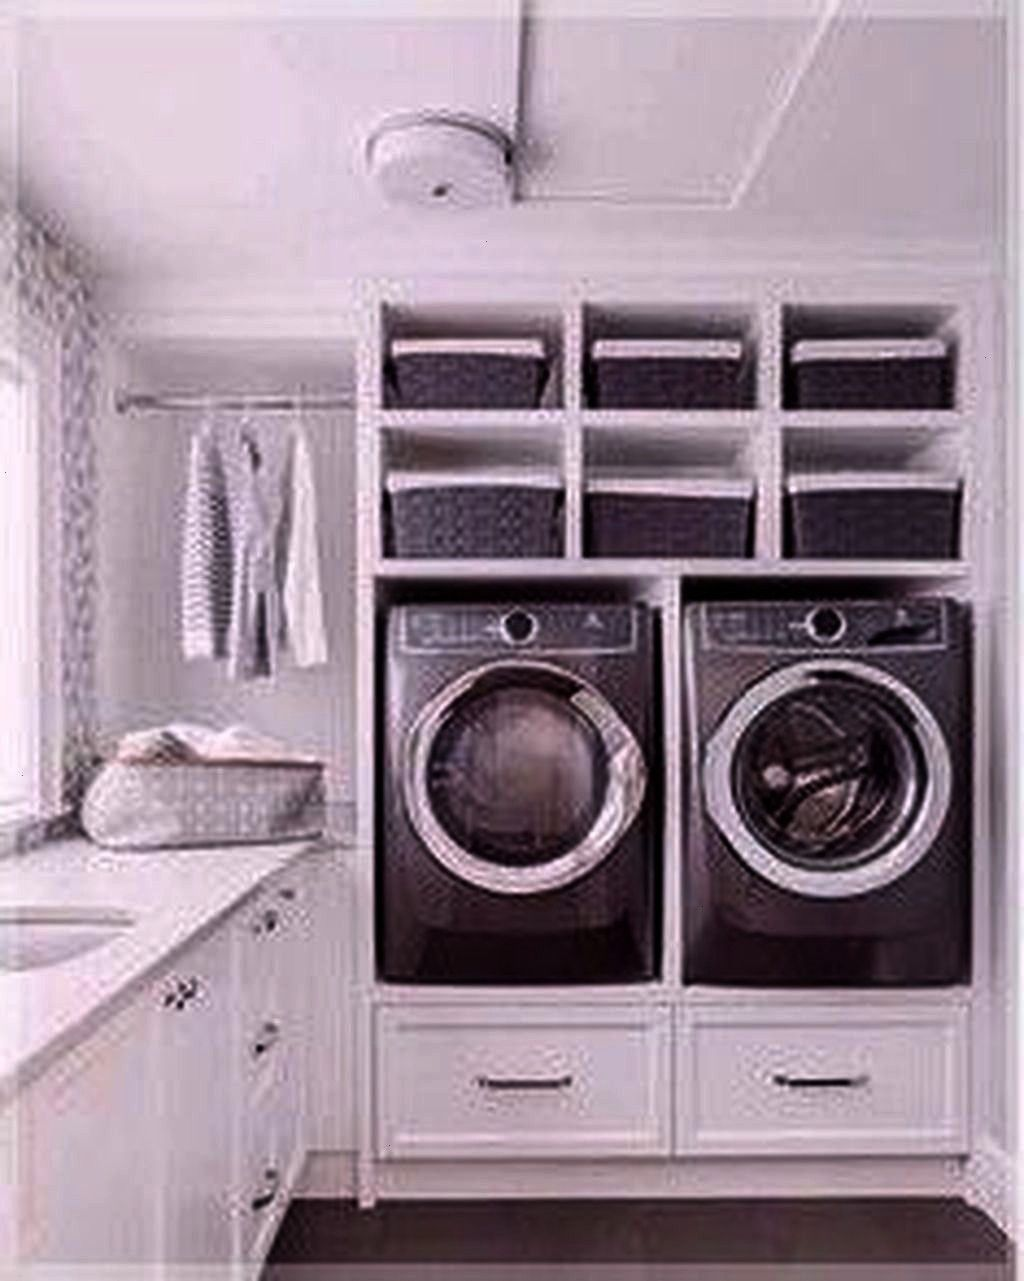 Laundry Room Layout Ideas  30 Relaxing Laundry Room Layout Ideas 30 Relaxing Laundry Room Layout Ideas Spacesaving ceilingmounted clothes drying rack with remote control...